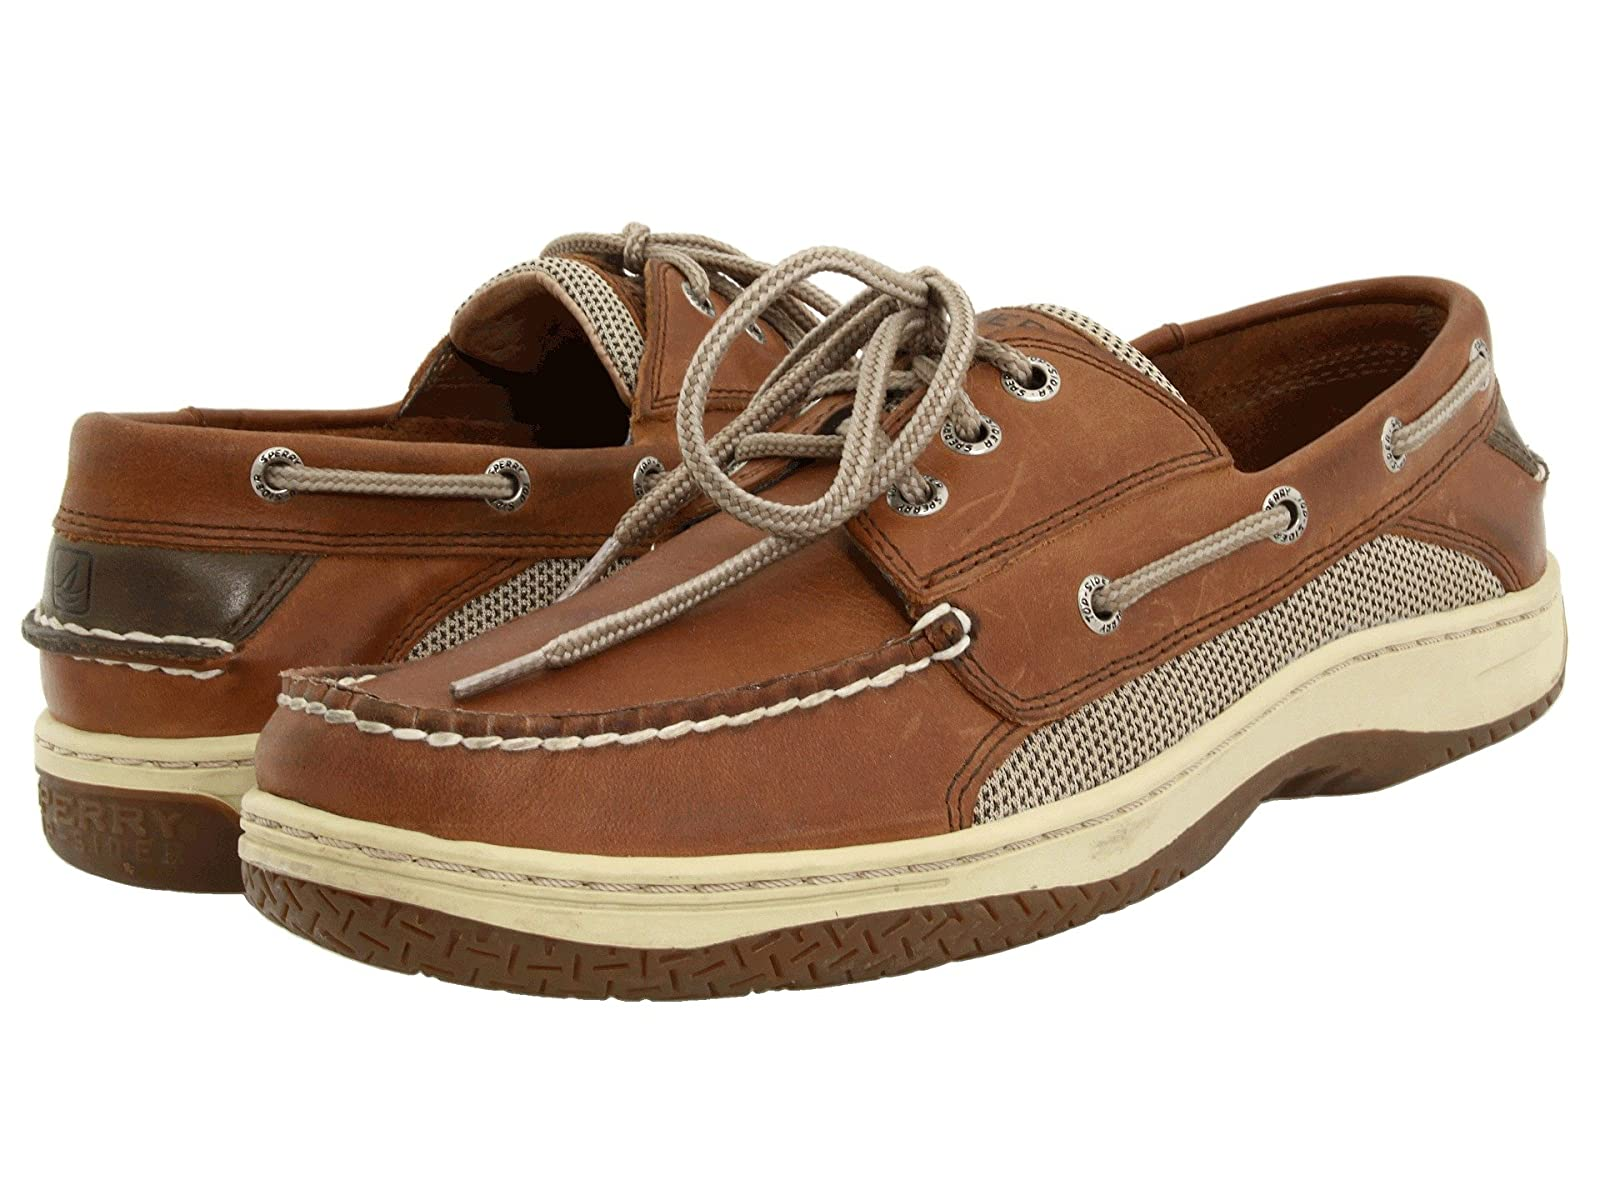 Sperry Billfish 3-Eye Boat ShoeSelling fashionable and eye-catching shoes